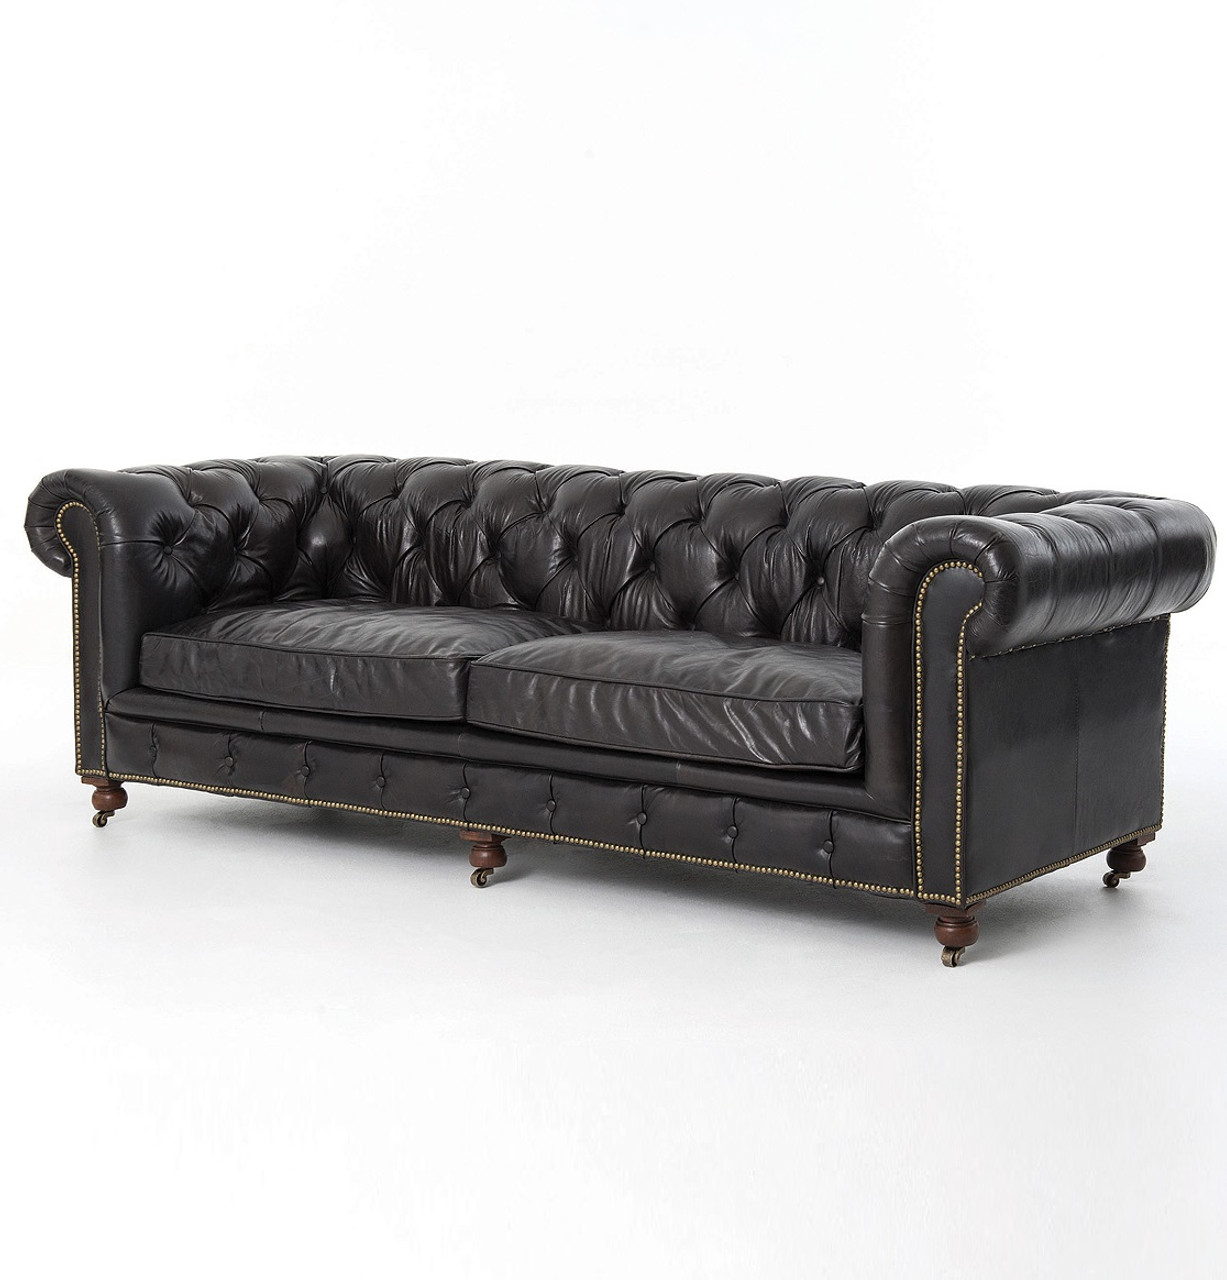 conrad 96 vintage black leather chesterfield sofa zin home. Black Bedroom Furniture Sets. Home Design Ideas